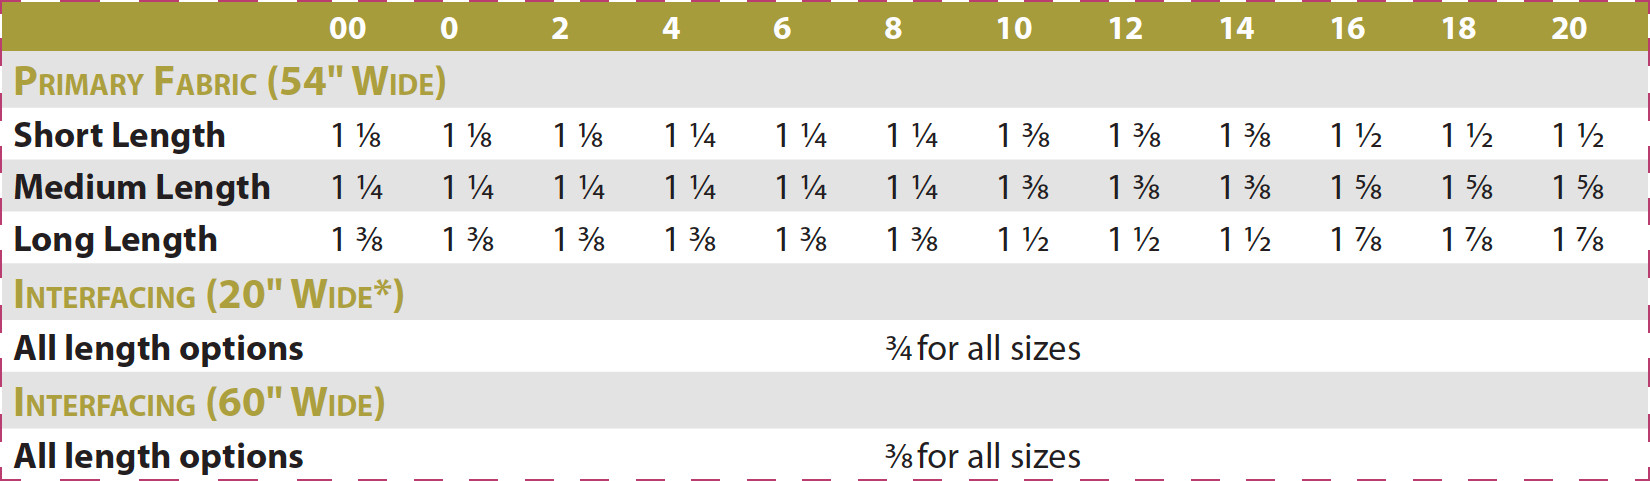 Hermosa Shorts PDF Sewing Pattern Fabric Requirements Imperial